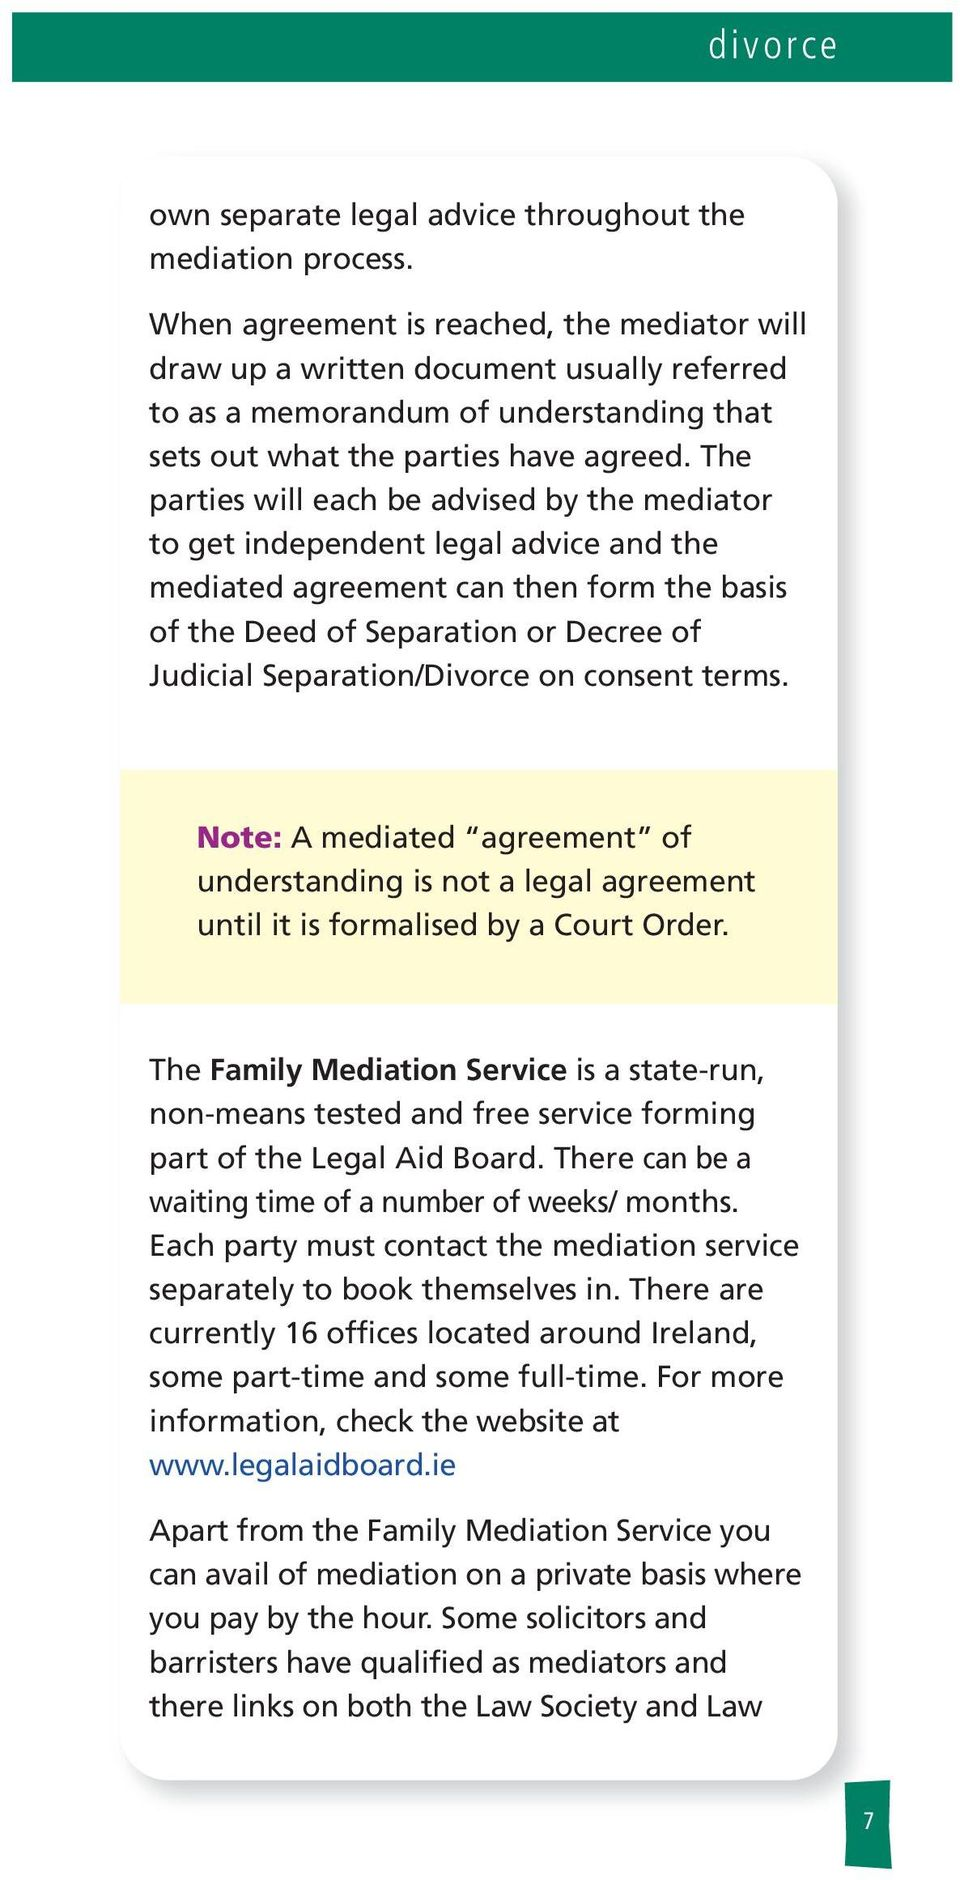 The parties wi each be advised by the mediator to get independent ega advice and the mediated agreement can then form the basis of the Deed of Separation or Decree of Judicia Separation/Divorce on